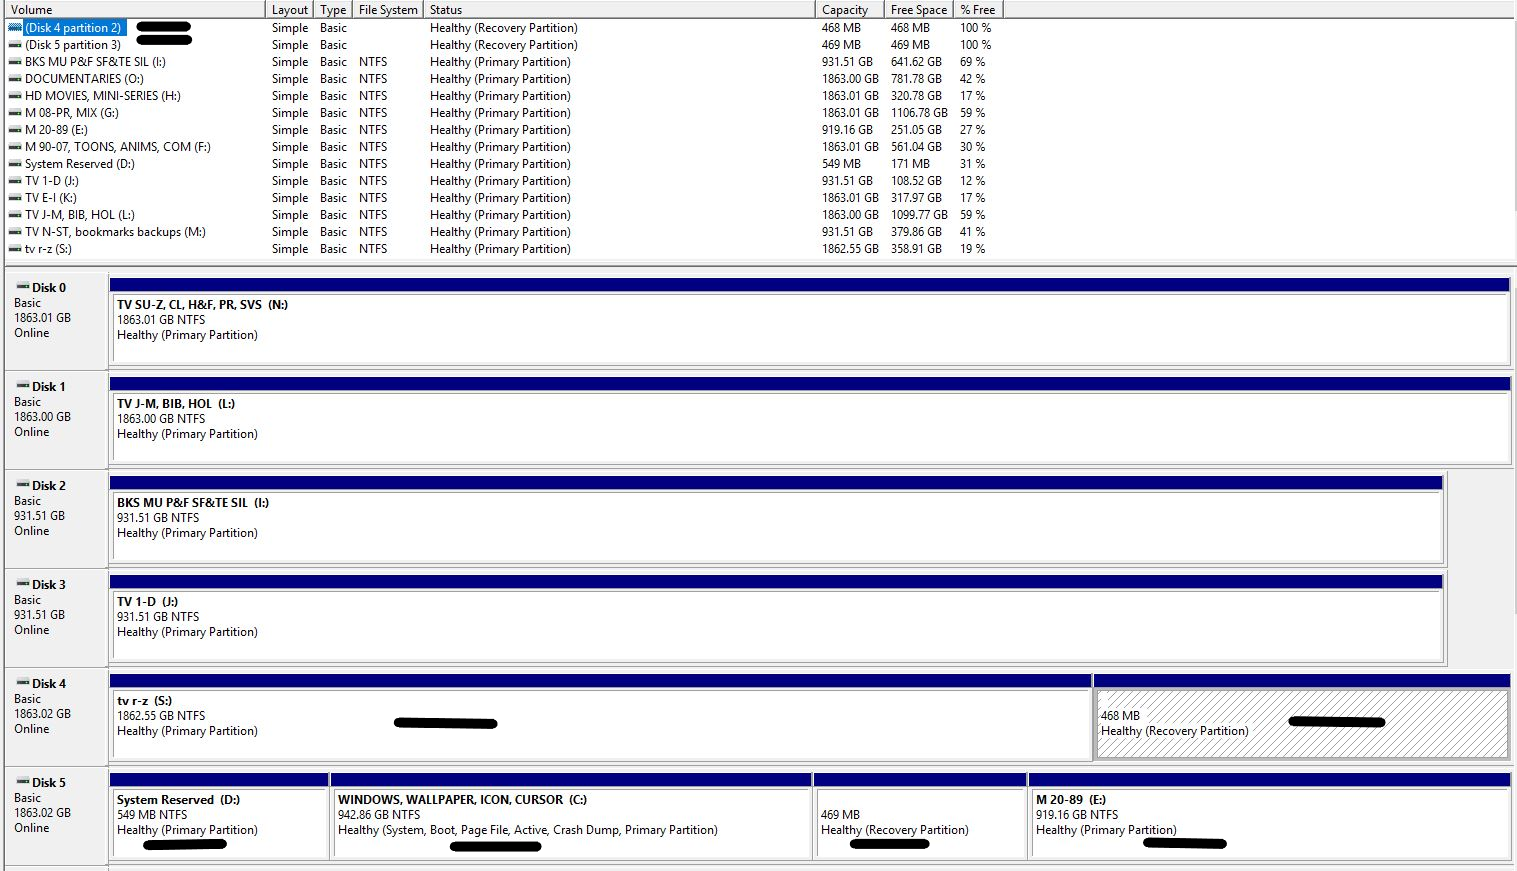 Recovery and EFI partition instead of System Reserved partition 4e755b21-a39d-4d2a-b329-7e1c4173efac?upload=true.png